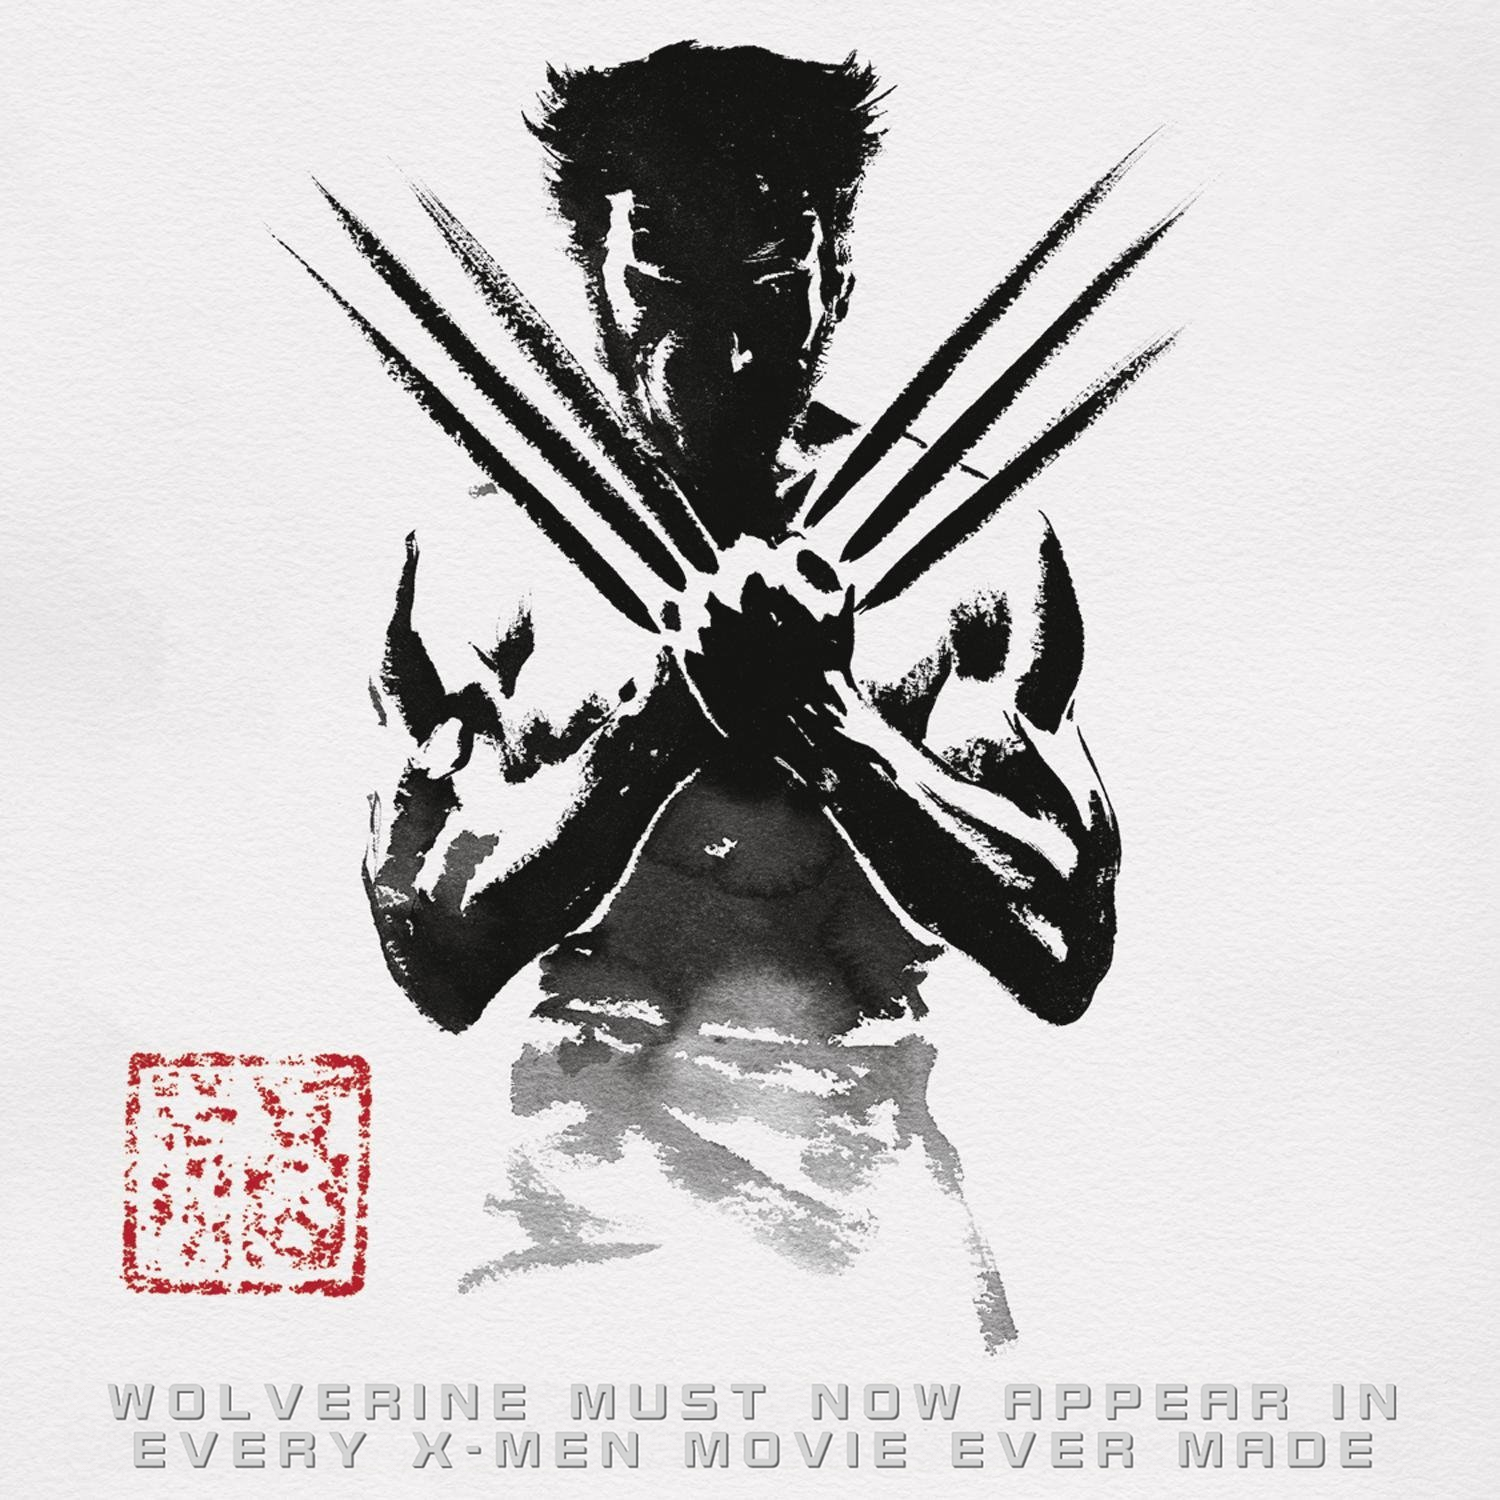 Album cover parody of The Wolverine by Marco Beltrami